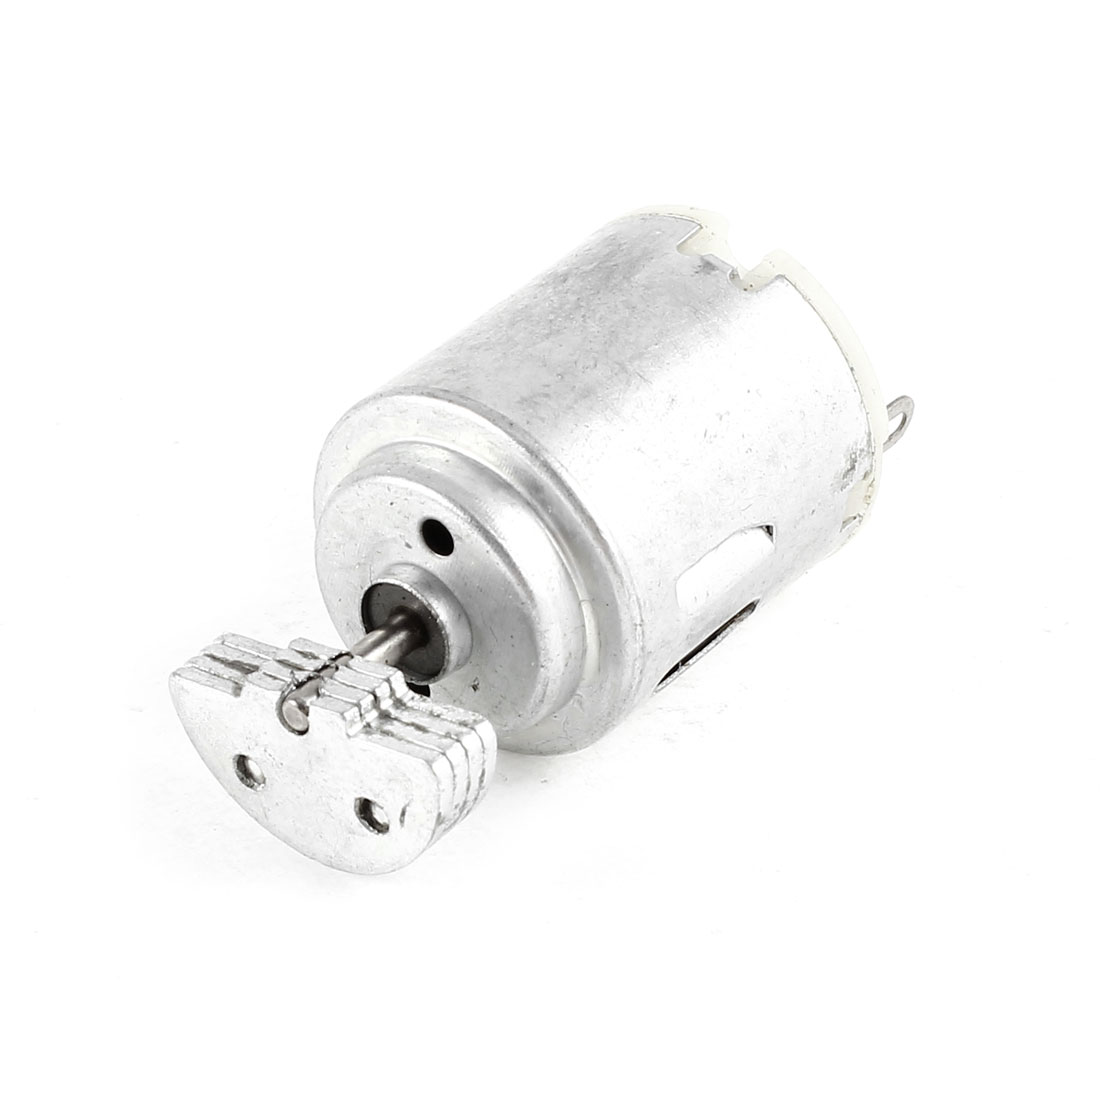 DC 3-6V 4200RPM Mini Vibration Vibrating Motor for Toys Massage Device